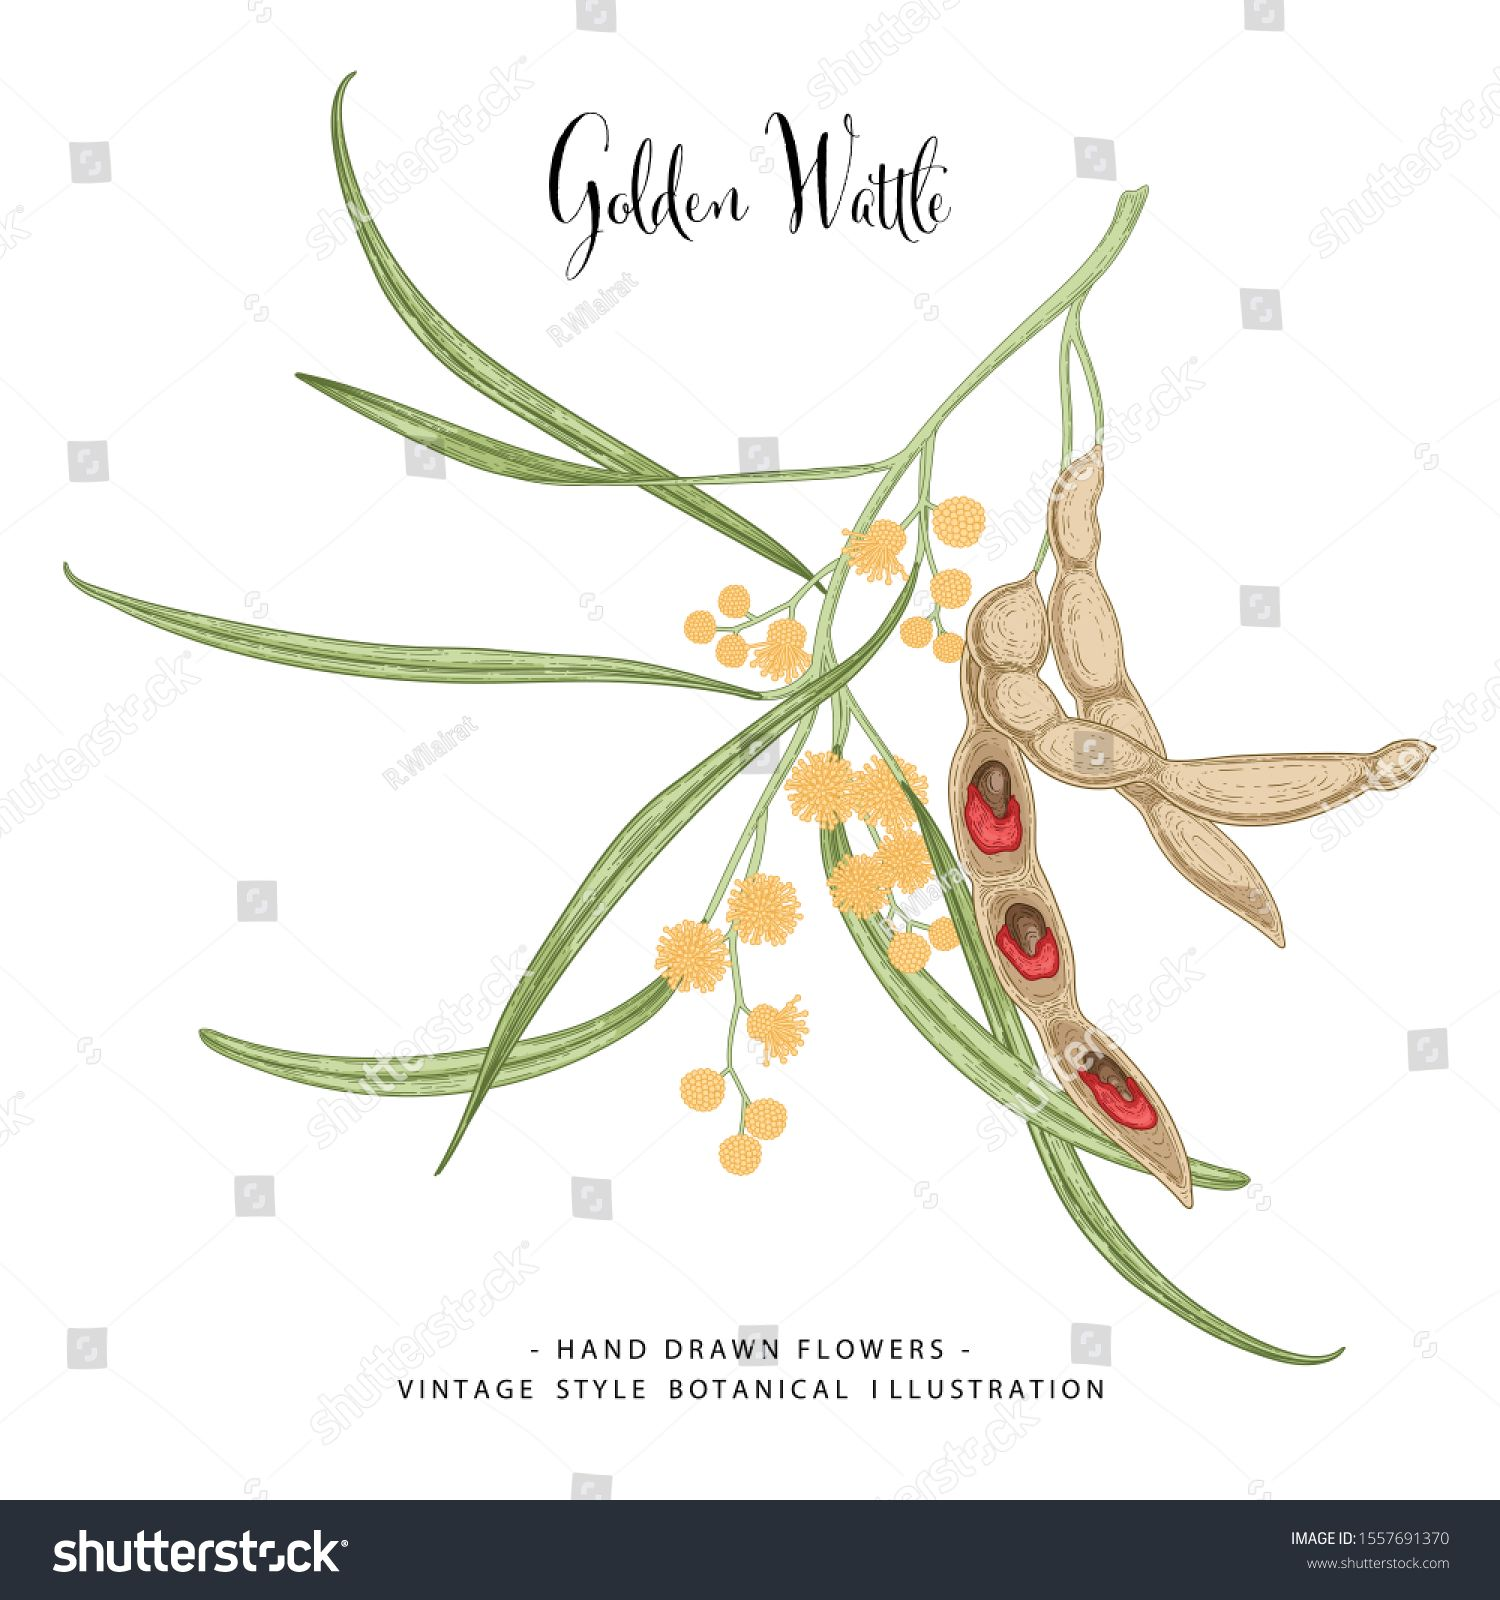 Vintage Botanical Illustration Golden Wattle Acacia Pycnantha Flower And Seed Pods Drawings Australia In 2020 Vintage Botanical Seed Illustration Hand Drawn Flowers